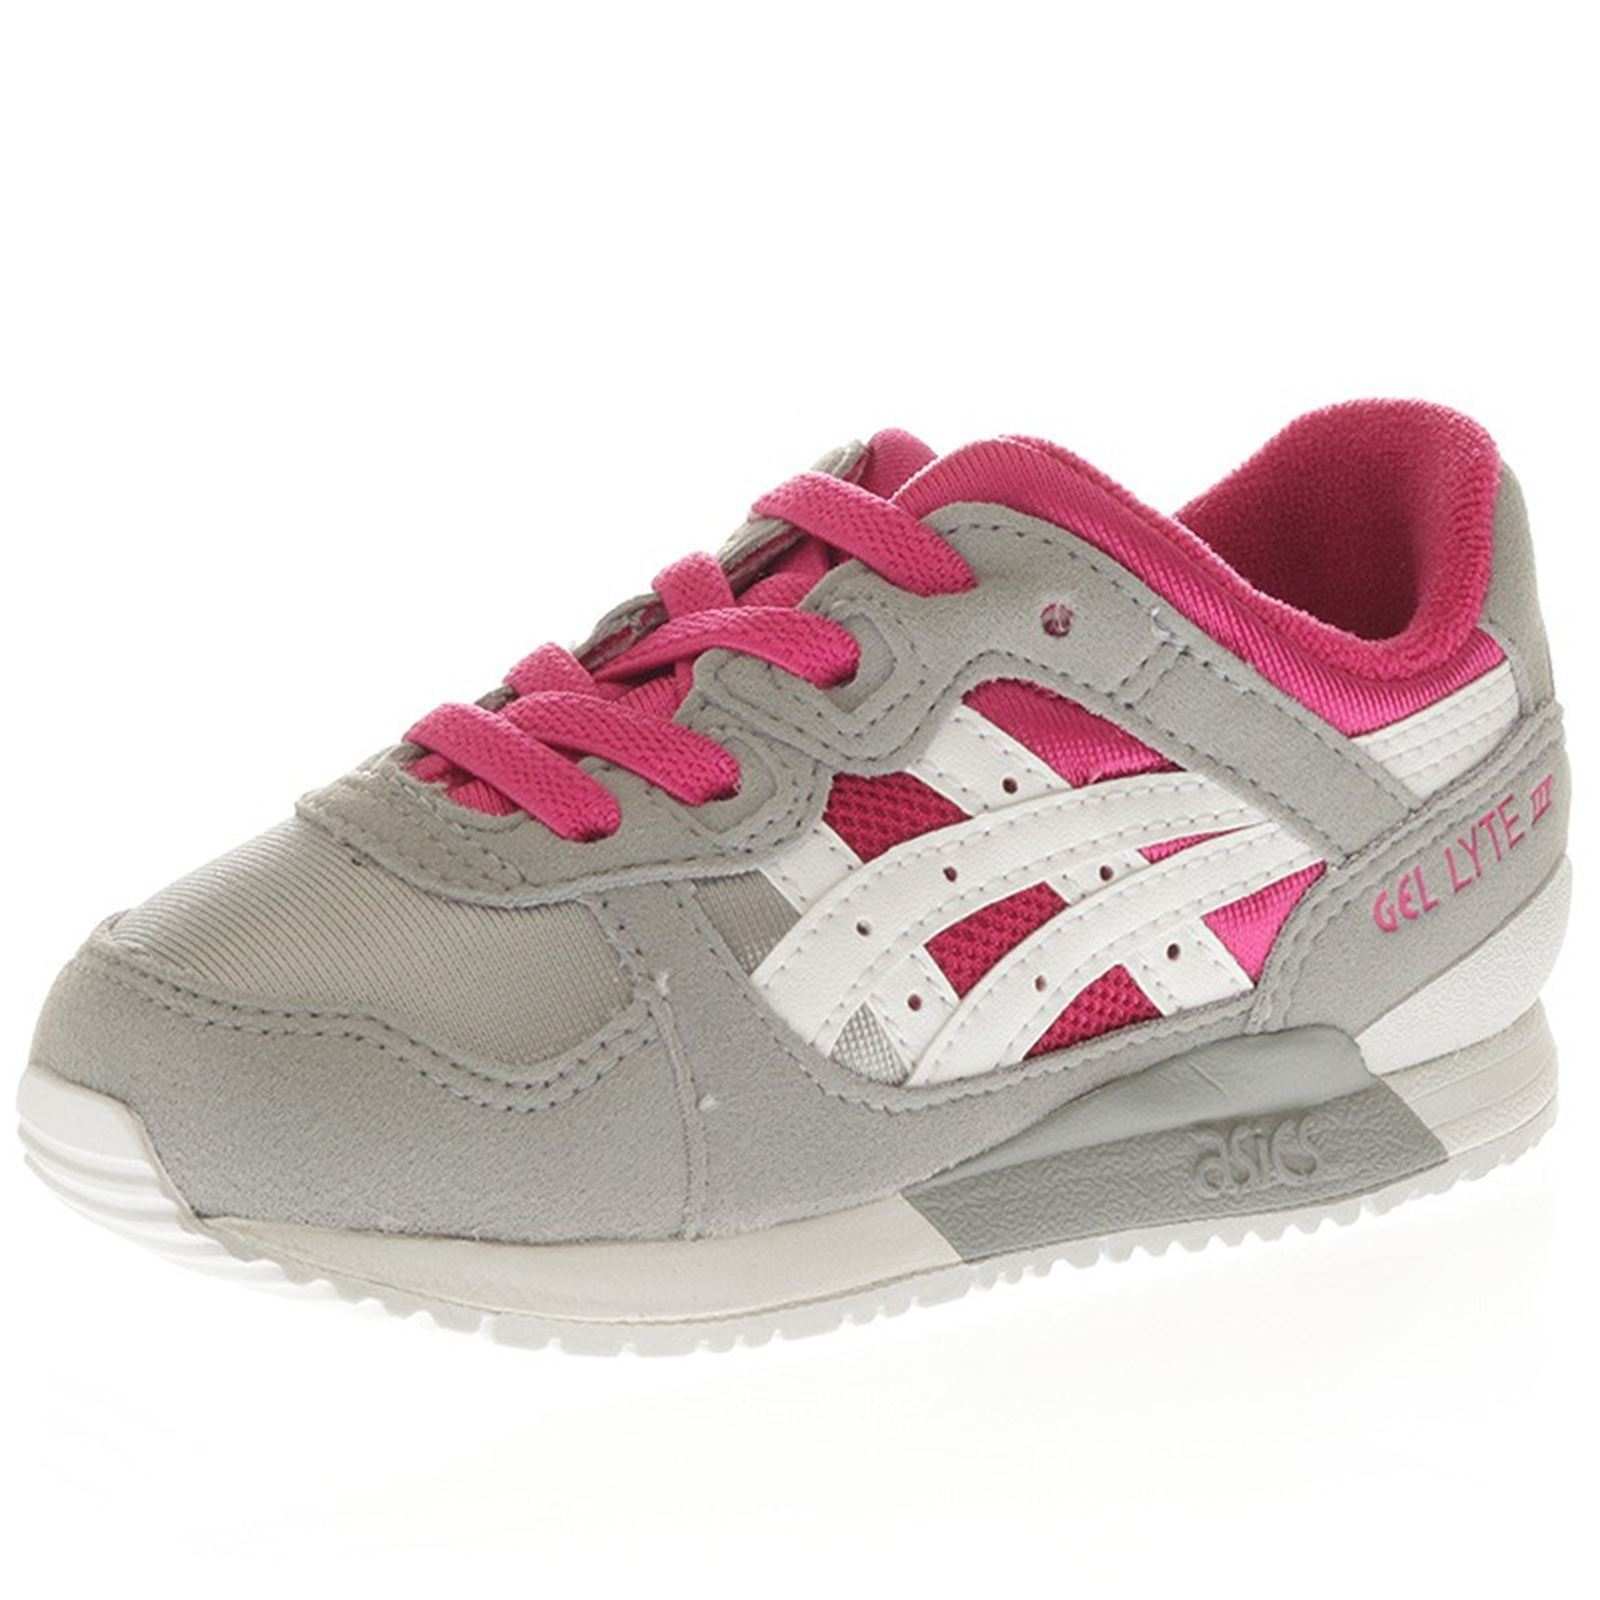 taille 40 c4205 89403 Gel lyte iii - Chaussures - gris